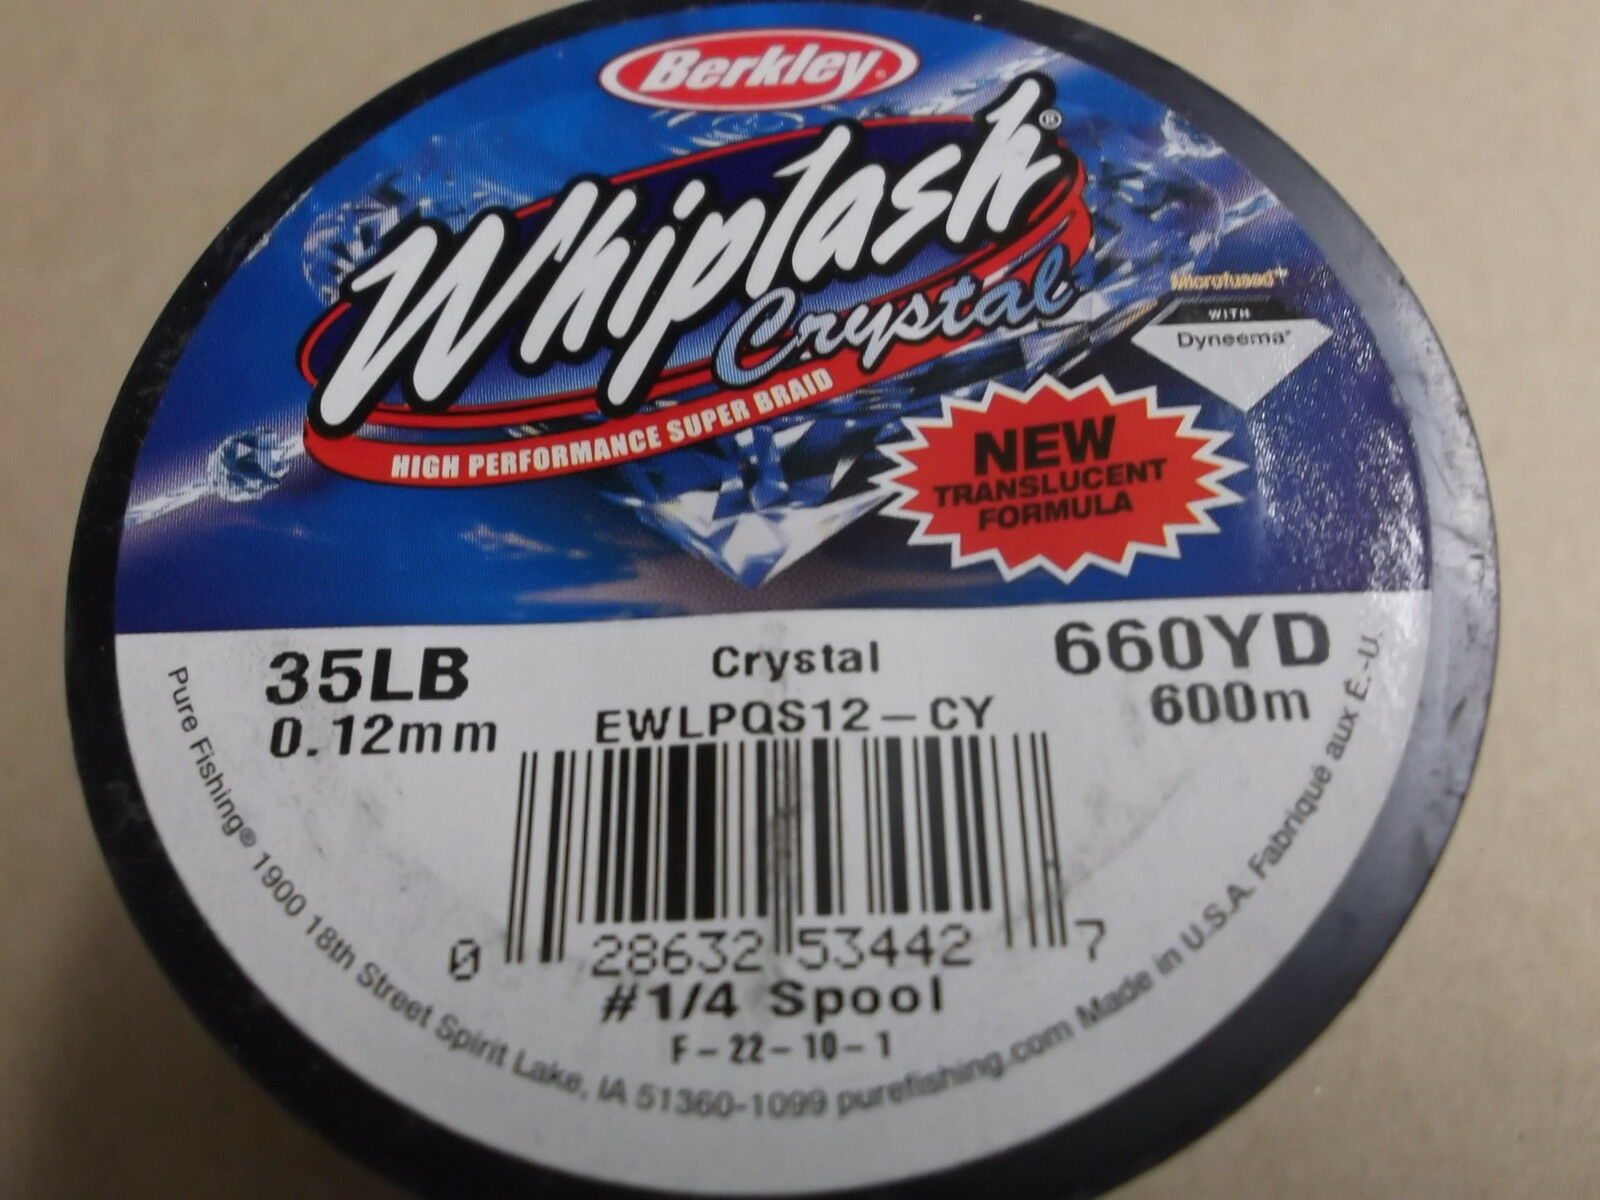 Berkley Whiplash Crystal Translucent Super Braid,35 lbs (.12mm) 660 yds.(600 m)